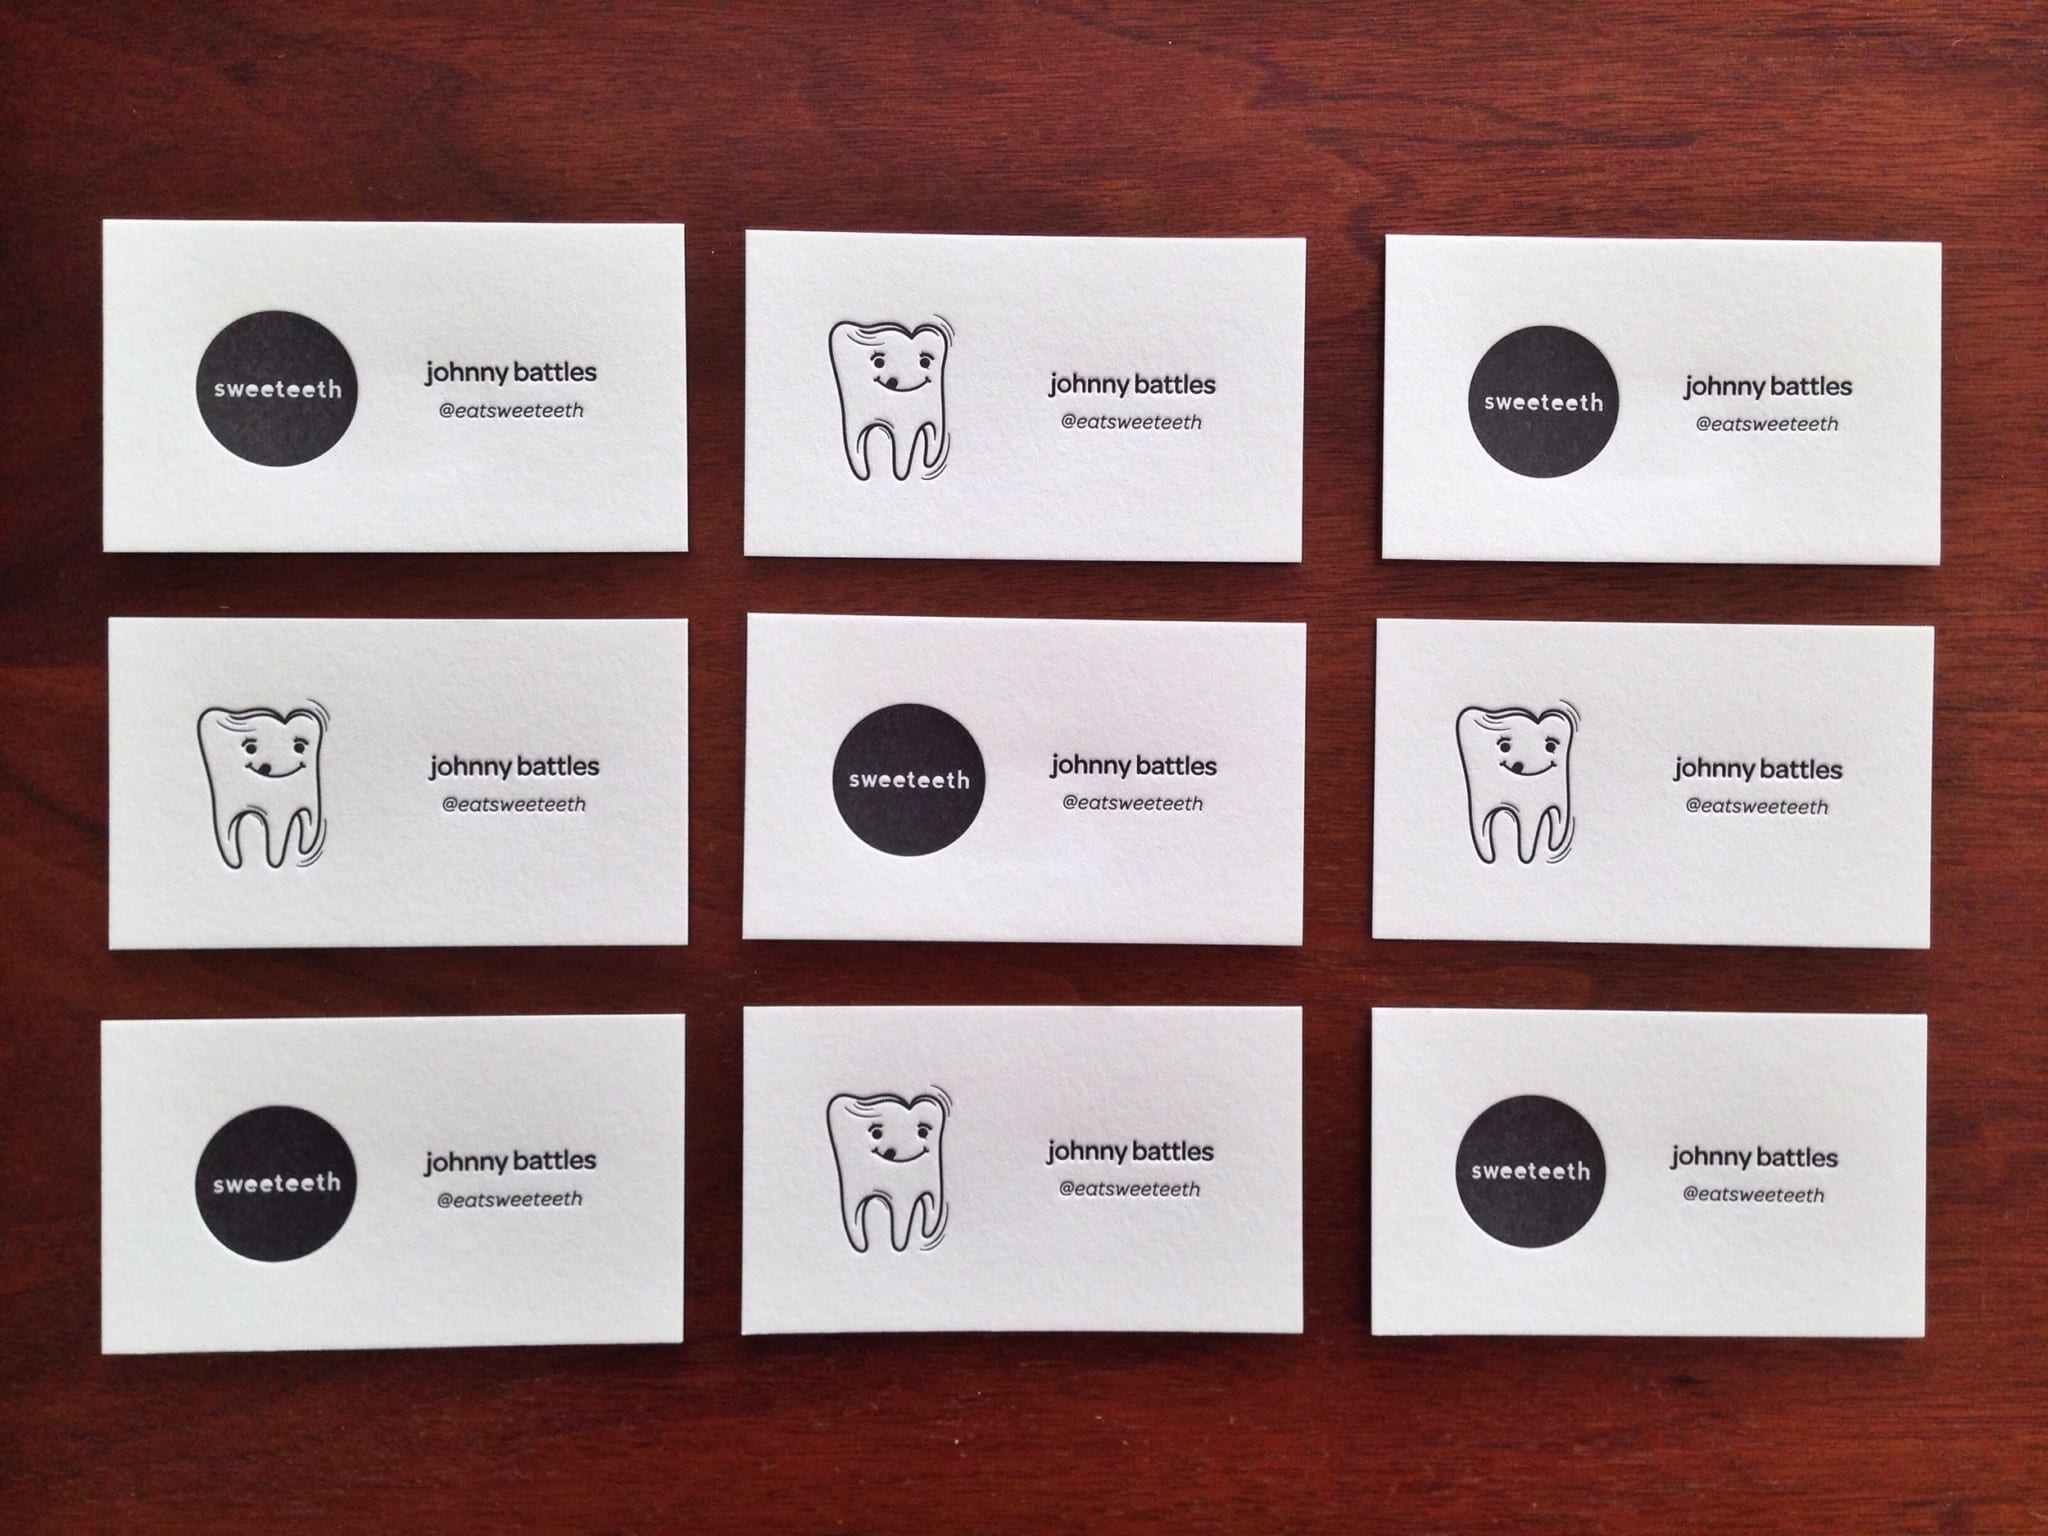 Sweeteeth Letterpress Business Cards | printed by INK MEETS PAPER